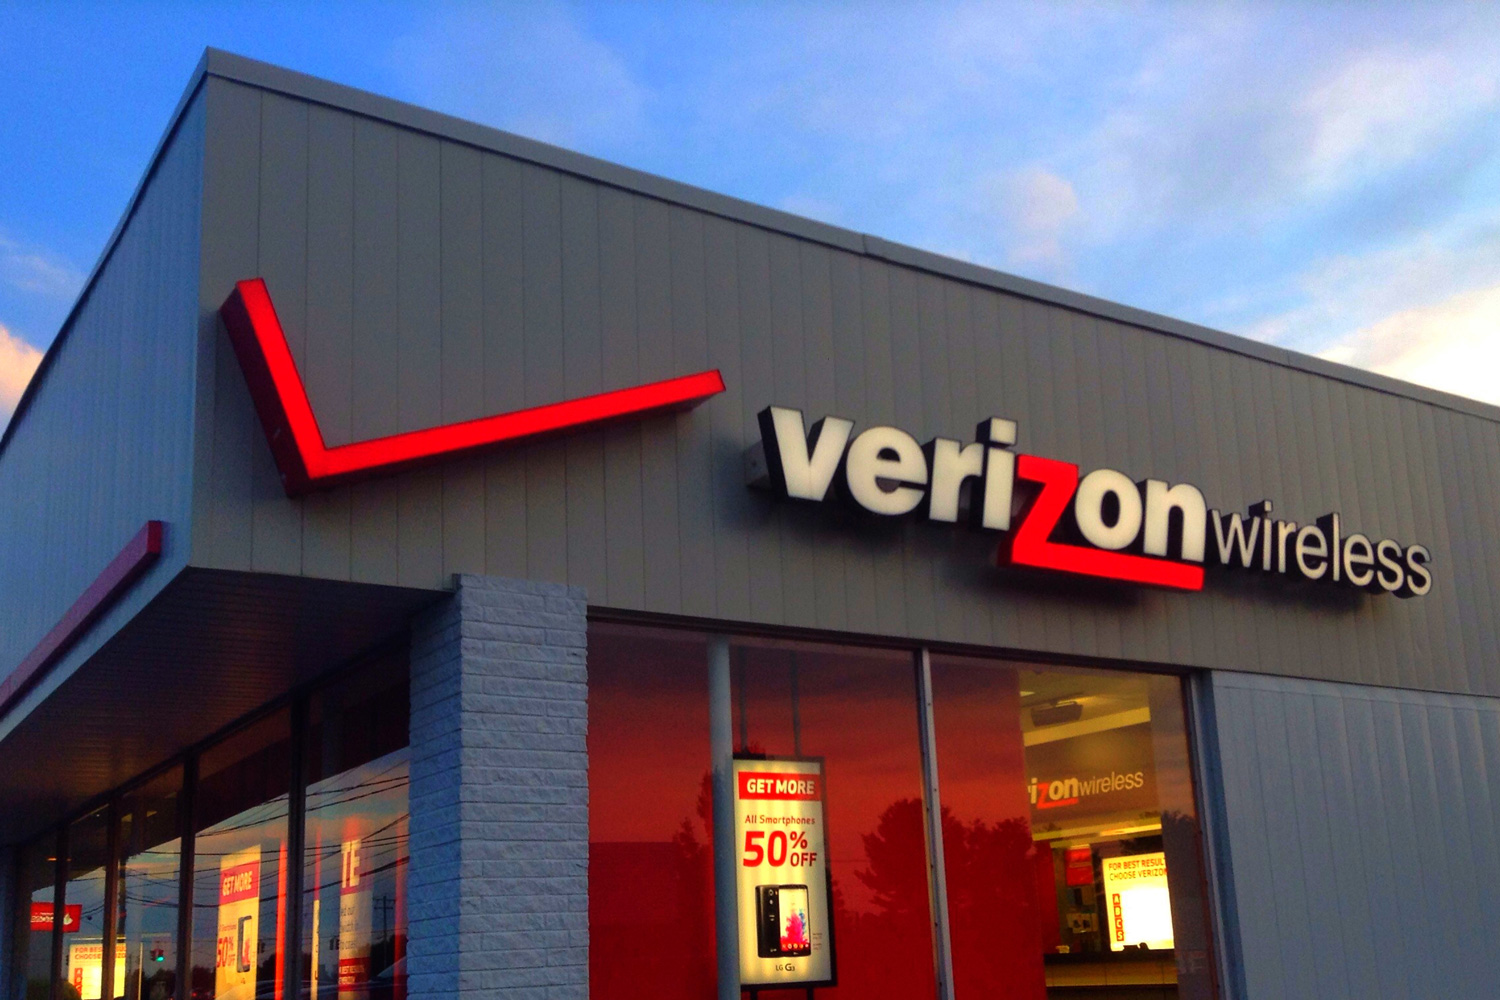 Verizon Fios ® Digital Voice A phone service you simply shouldn't live without! Fios ® Digital Voice is a feature rich voice service that uses Verizon's fiber optic network to deliver a high quality, cost-competitive, advanced voice solution to residential customers.